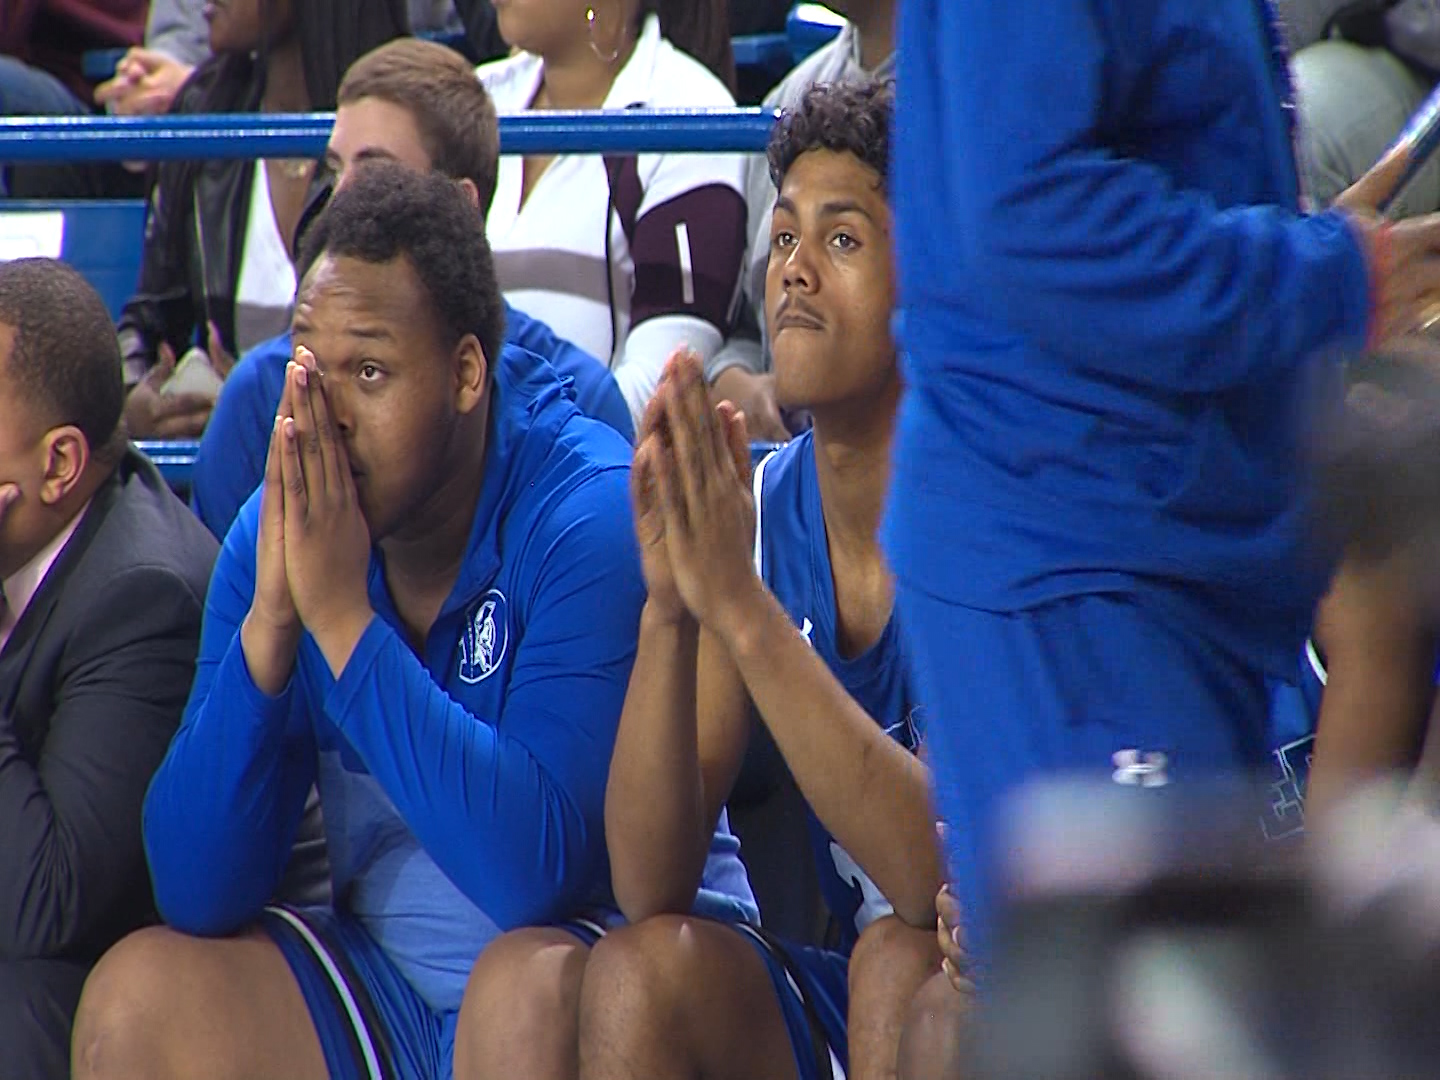 A Look at The DIAA Boy's Delaware State Championship Game: #1 Sanford vs. #2 Delaware